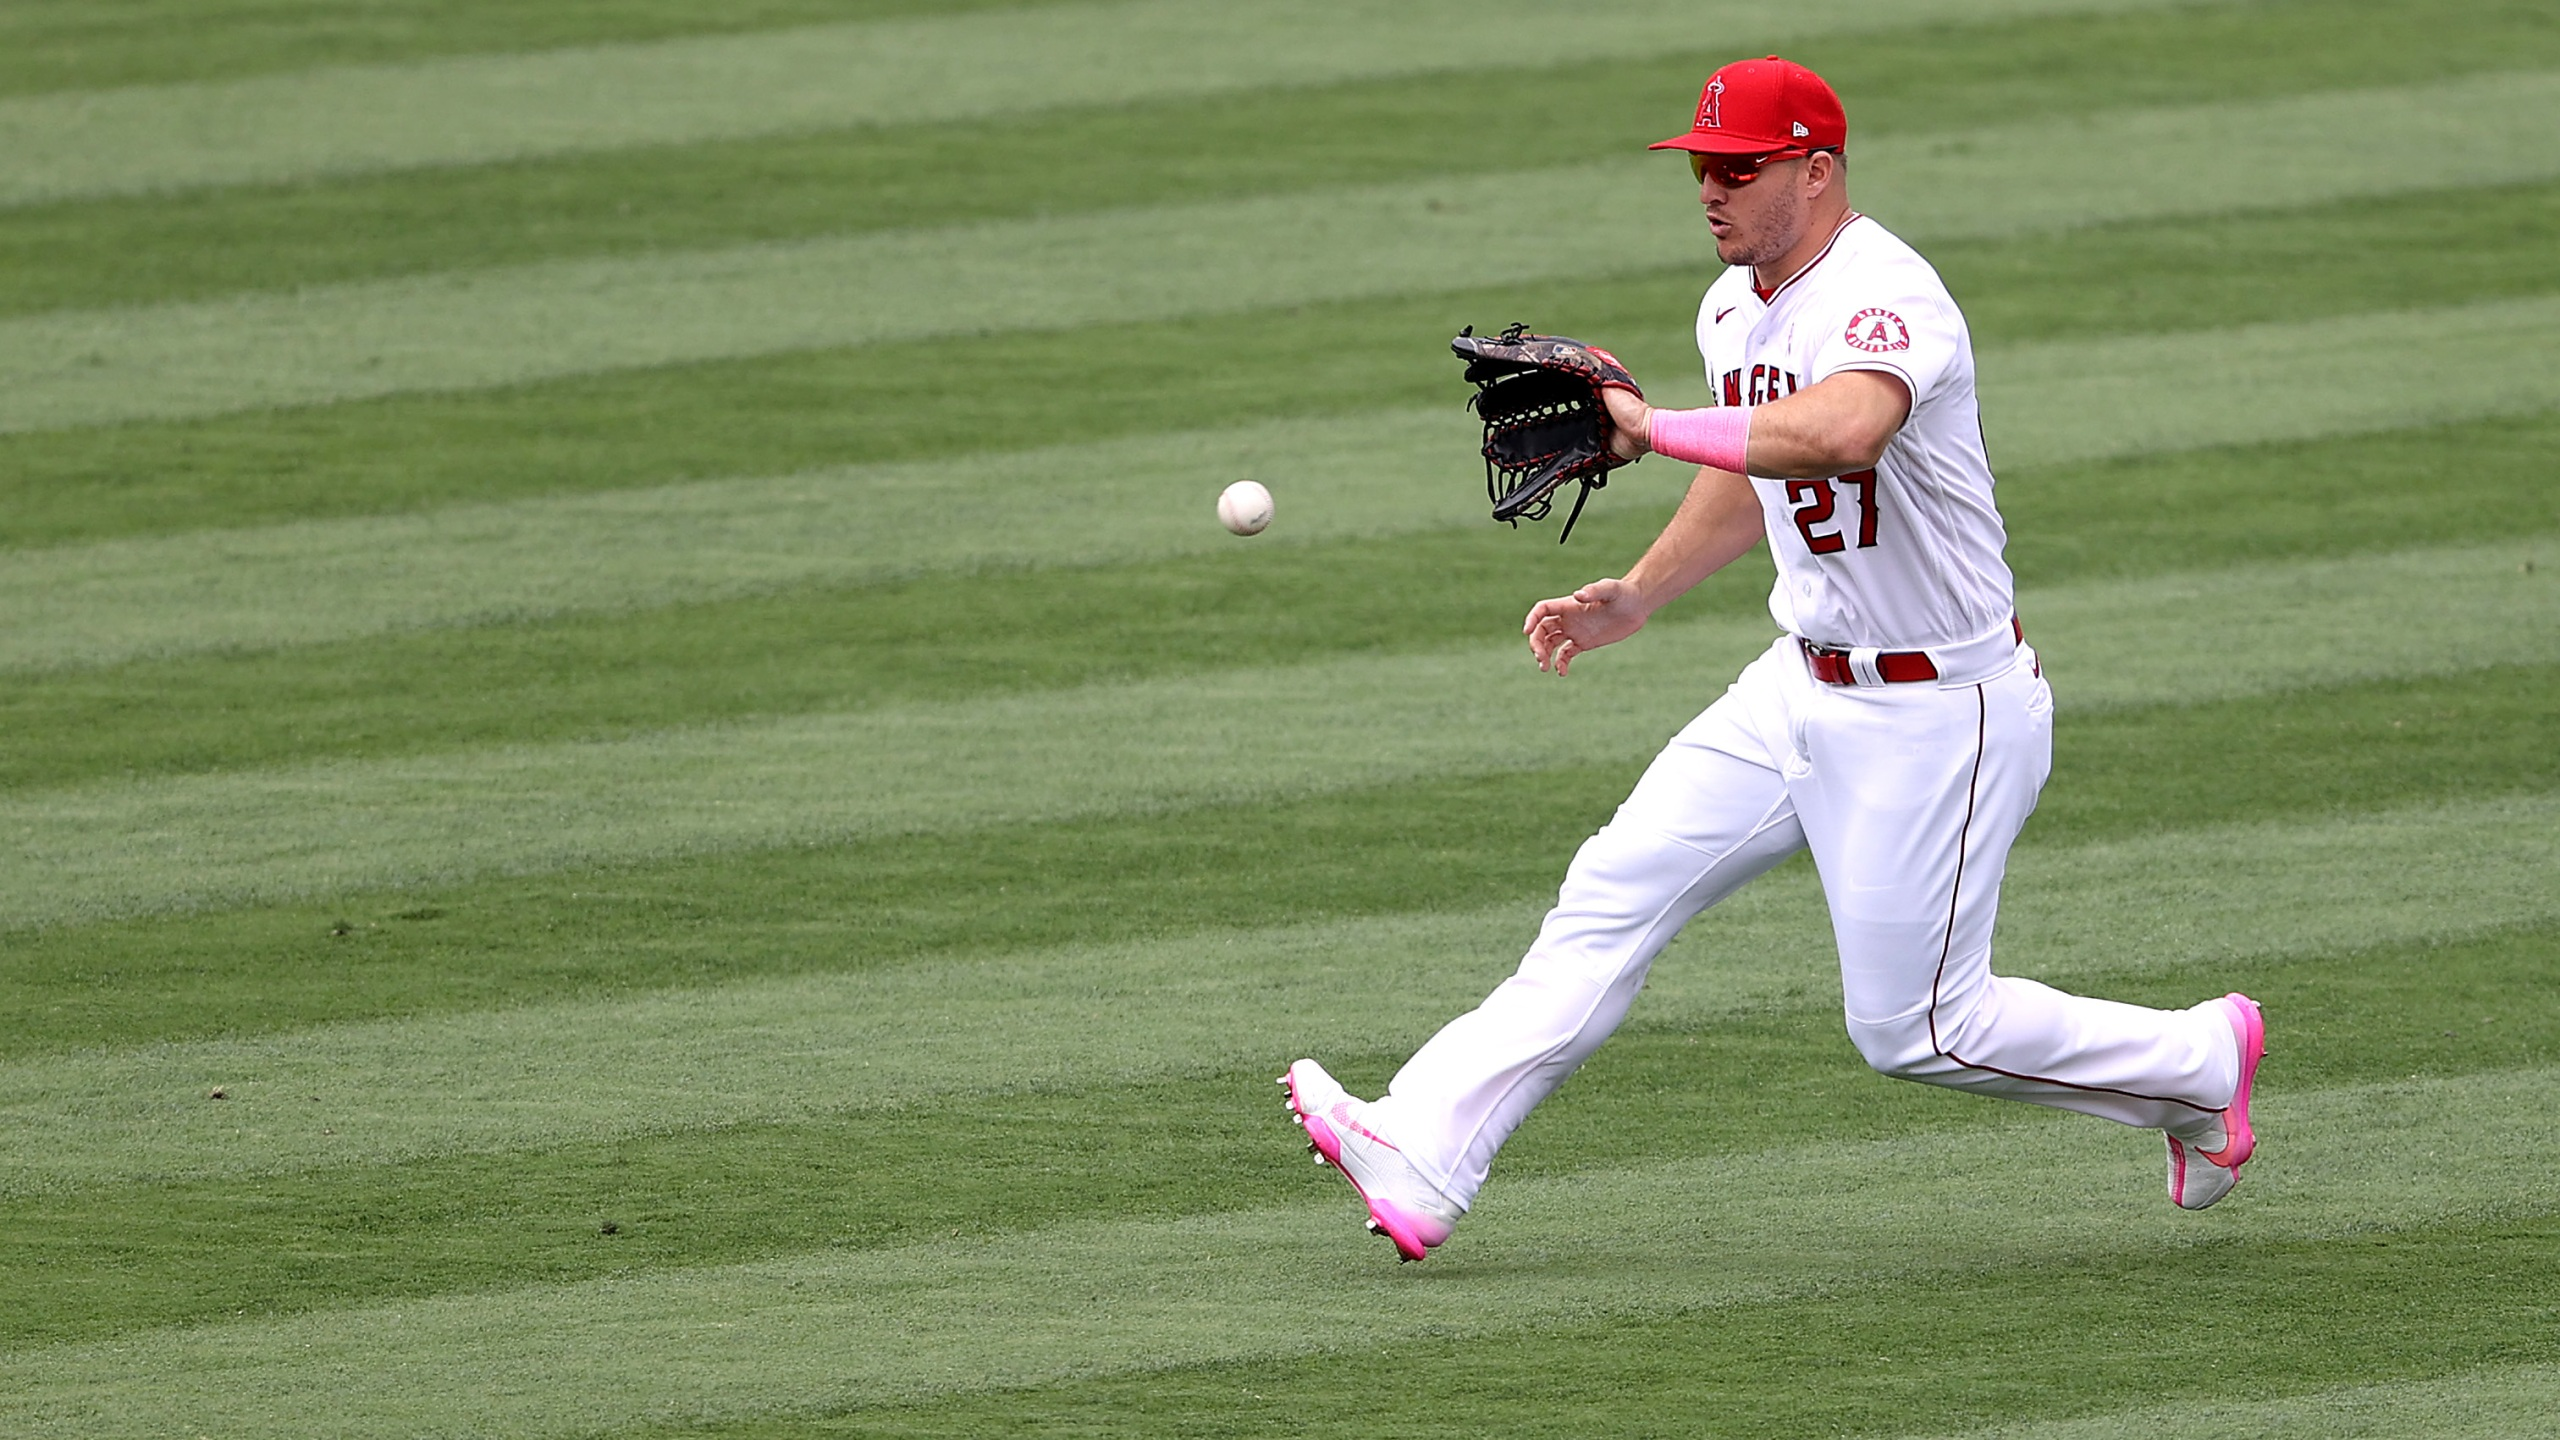 Mike Trout #27 of the Los Angeles Angels fields a fly ball on May 9, 2021. (Photo by Sean M. Haffey/Getty Images)